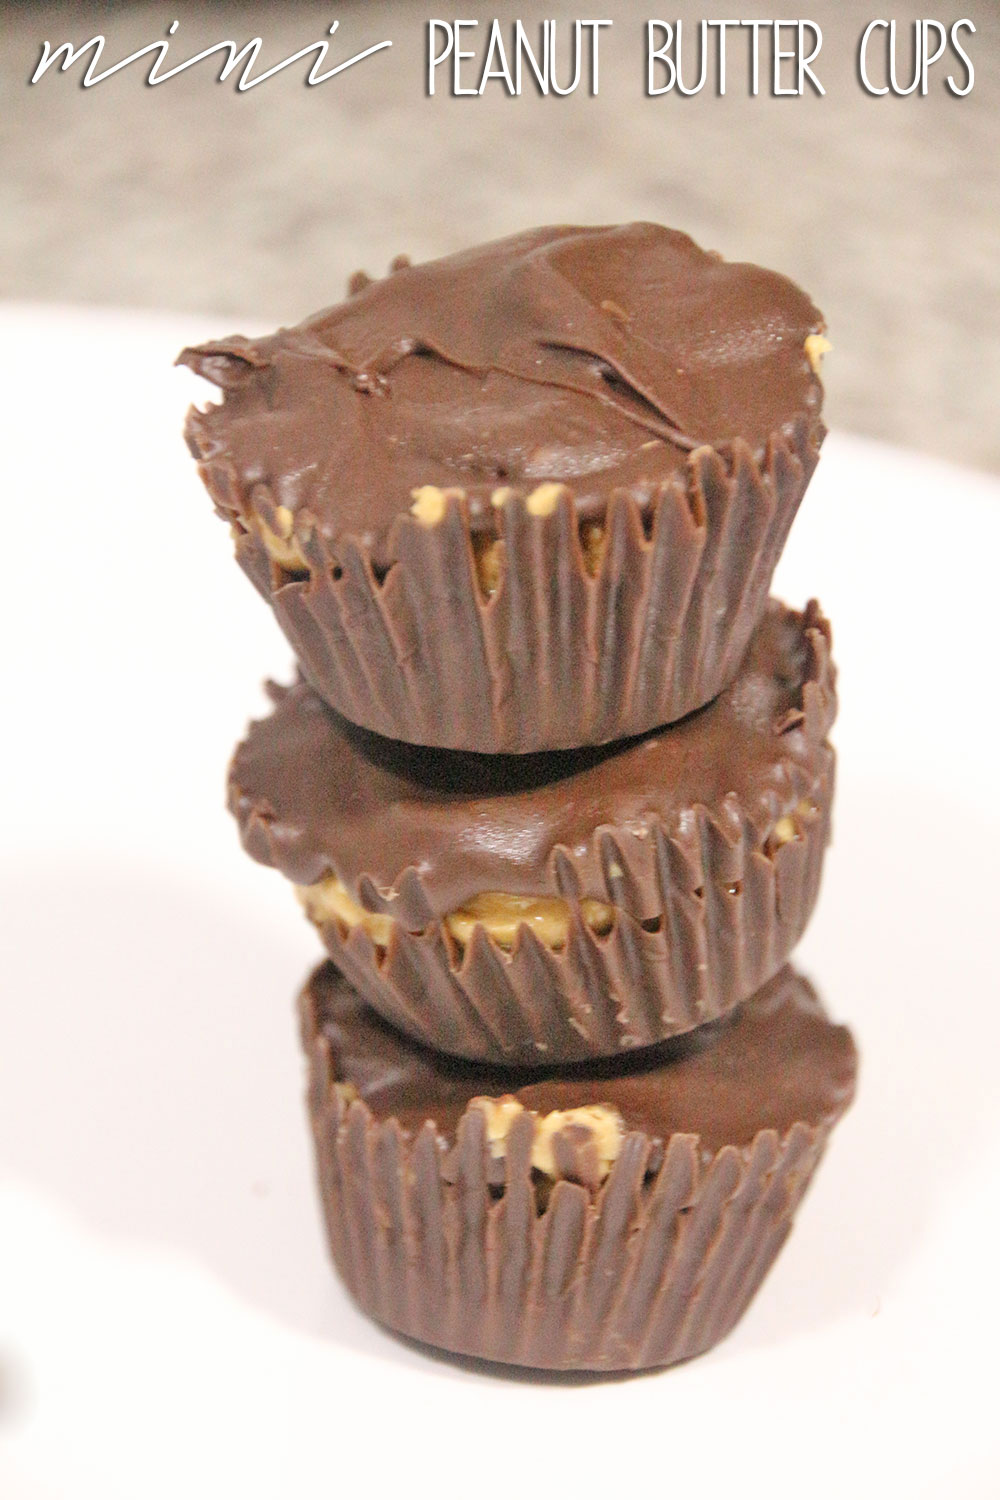 Mini-Peanut-Butter-Cups-041-text